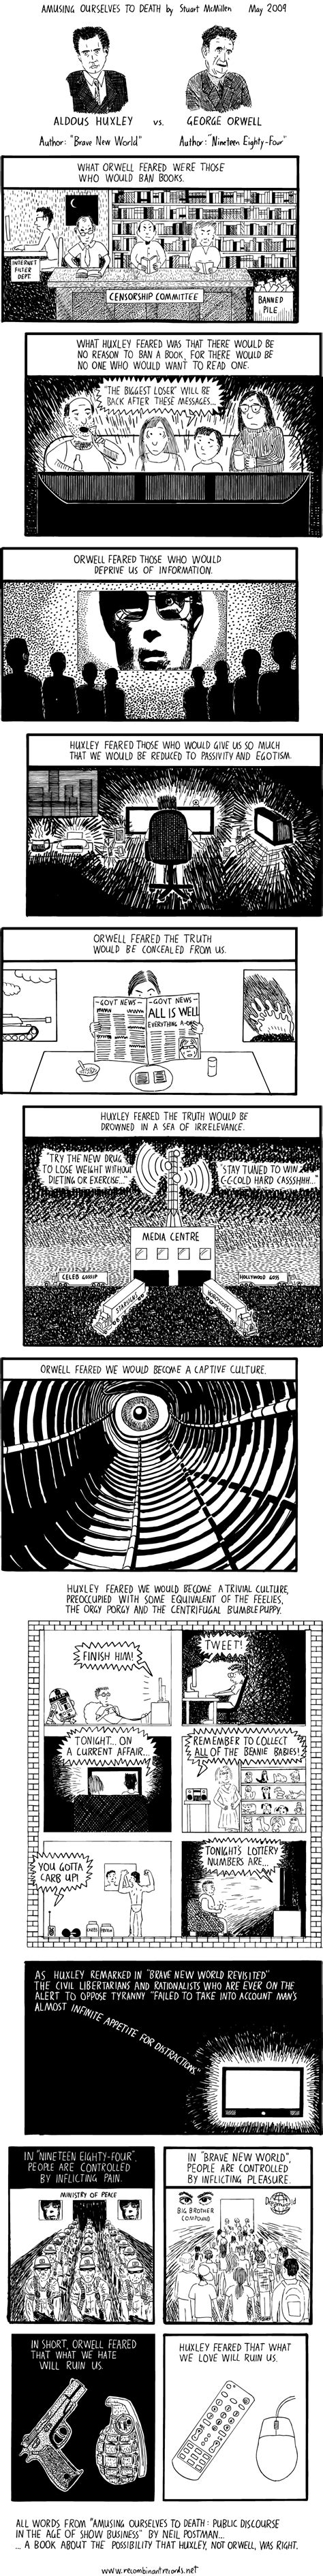 themes of brave new world and 1984 amusing ourselves to death comic strip 171 twistedsifter